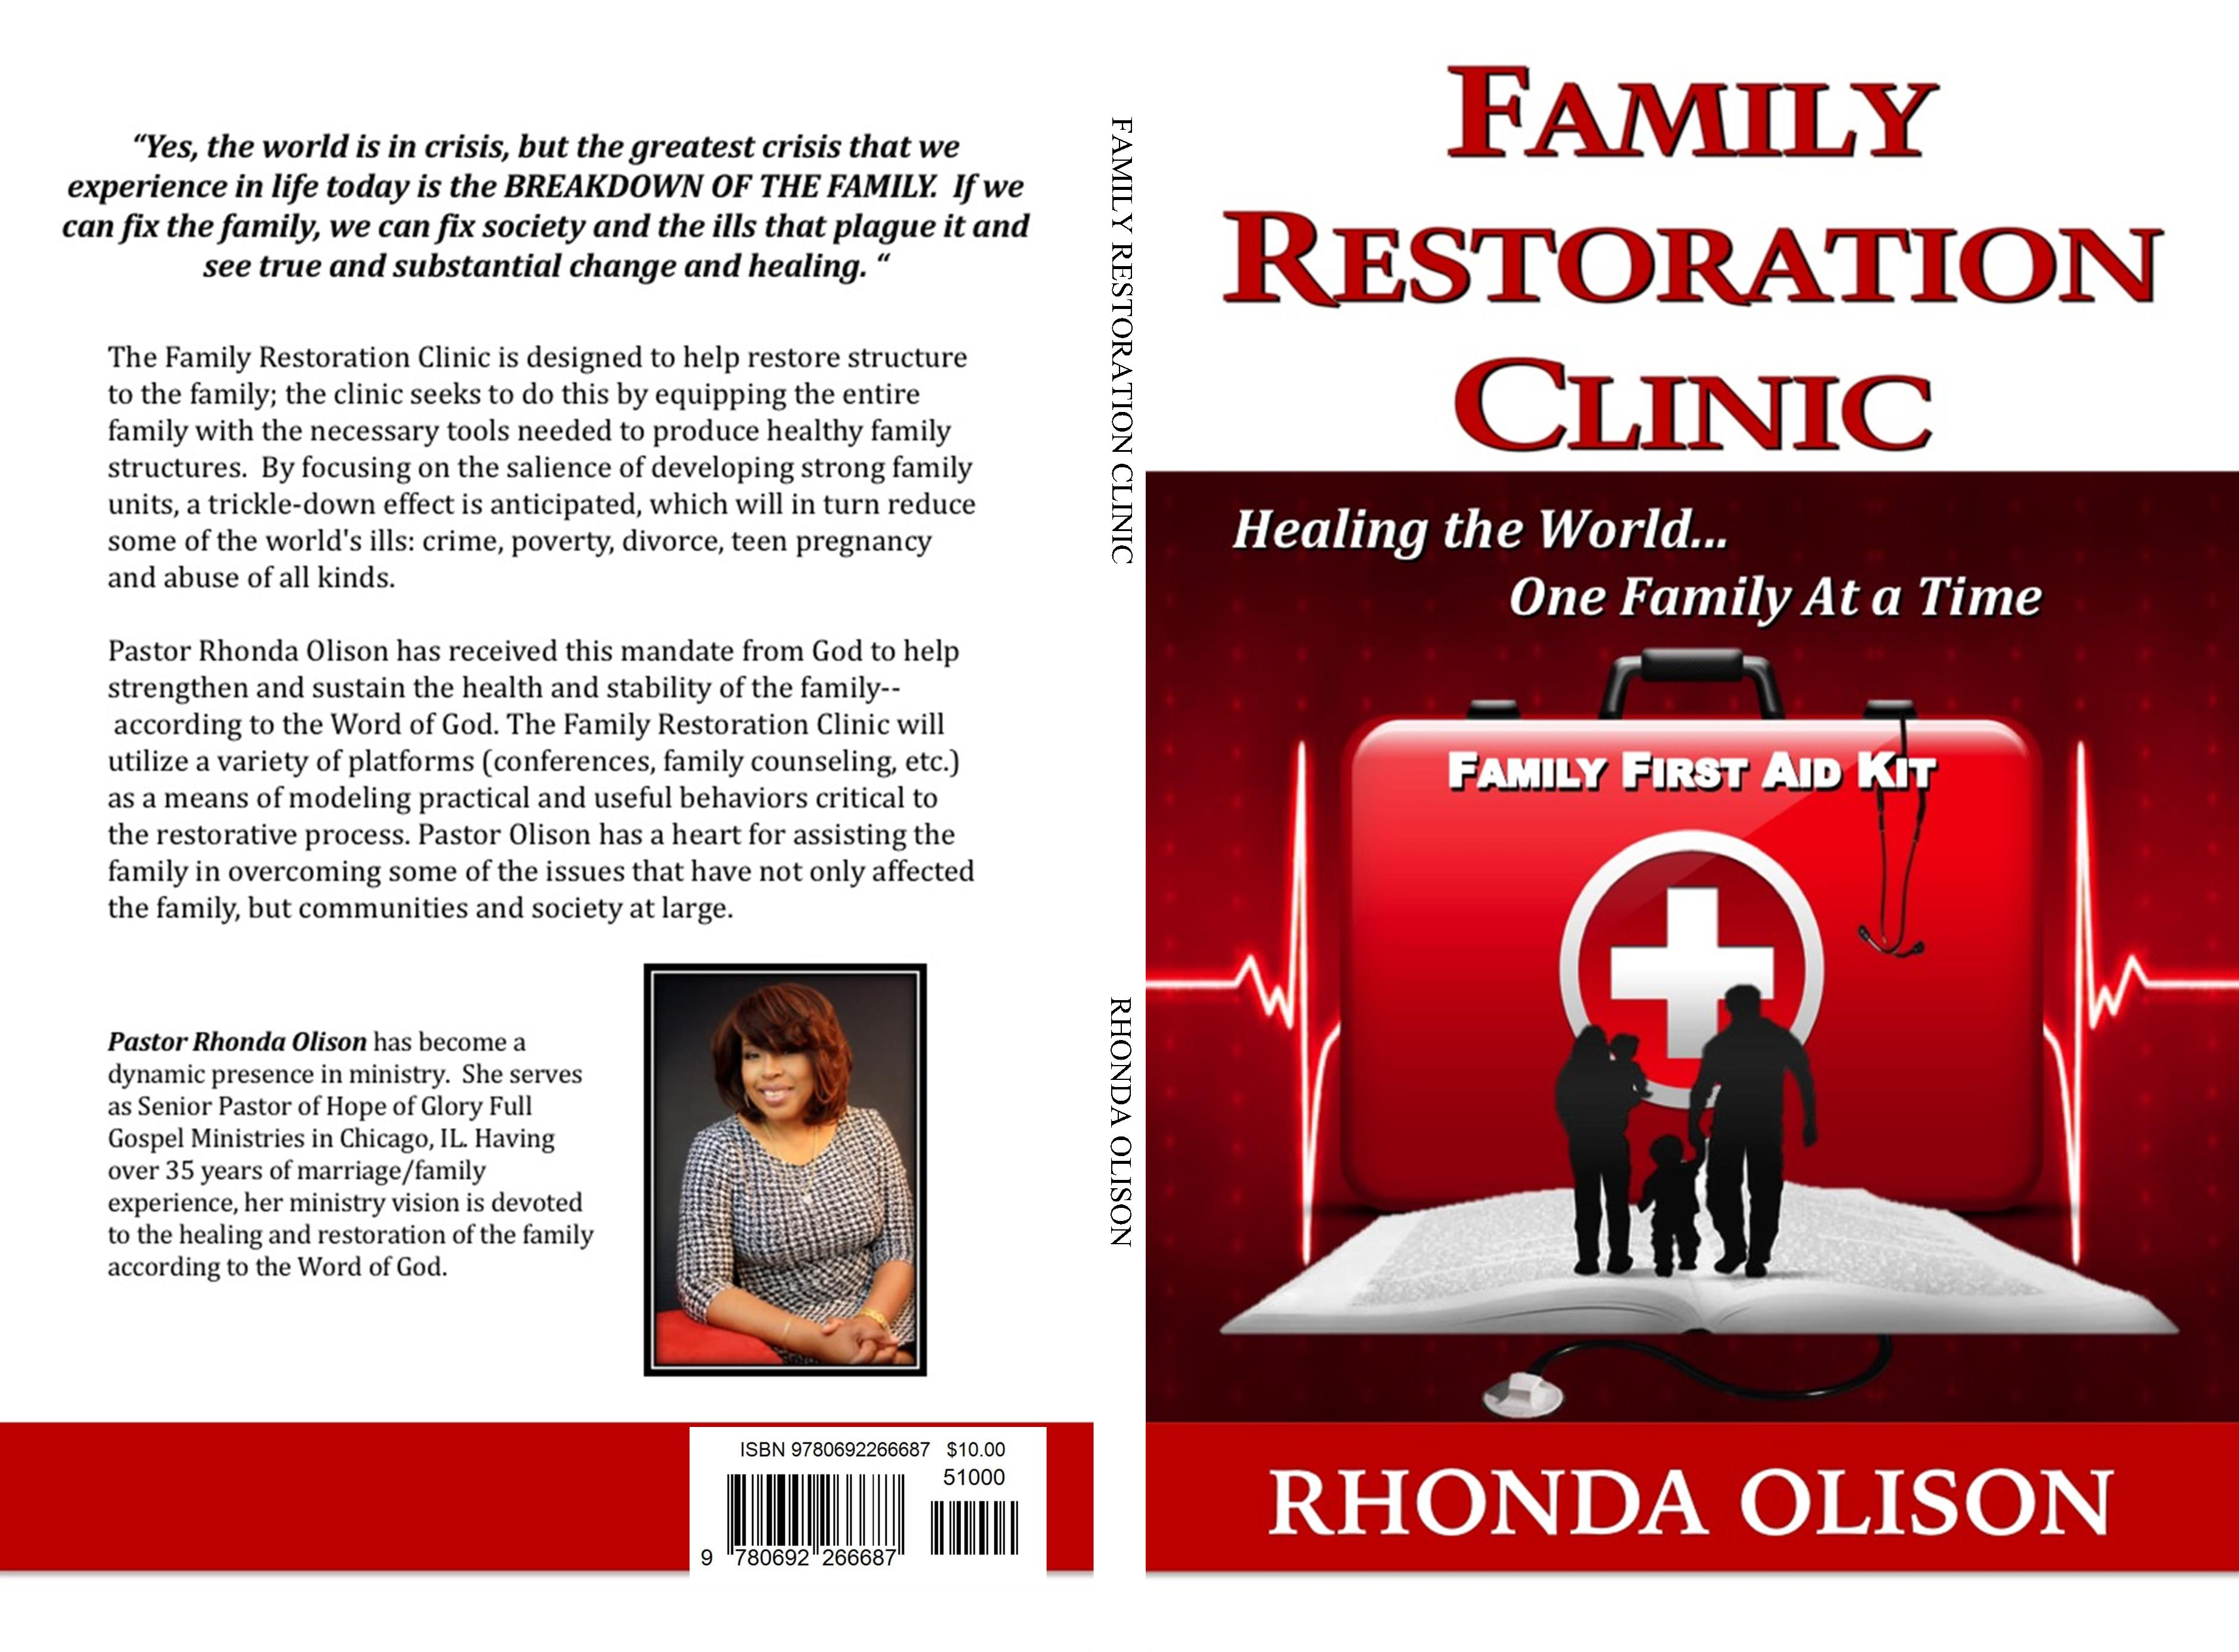 FAMILY RESTORATION CLINIC cover image